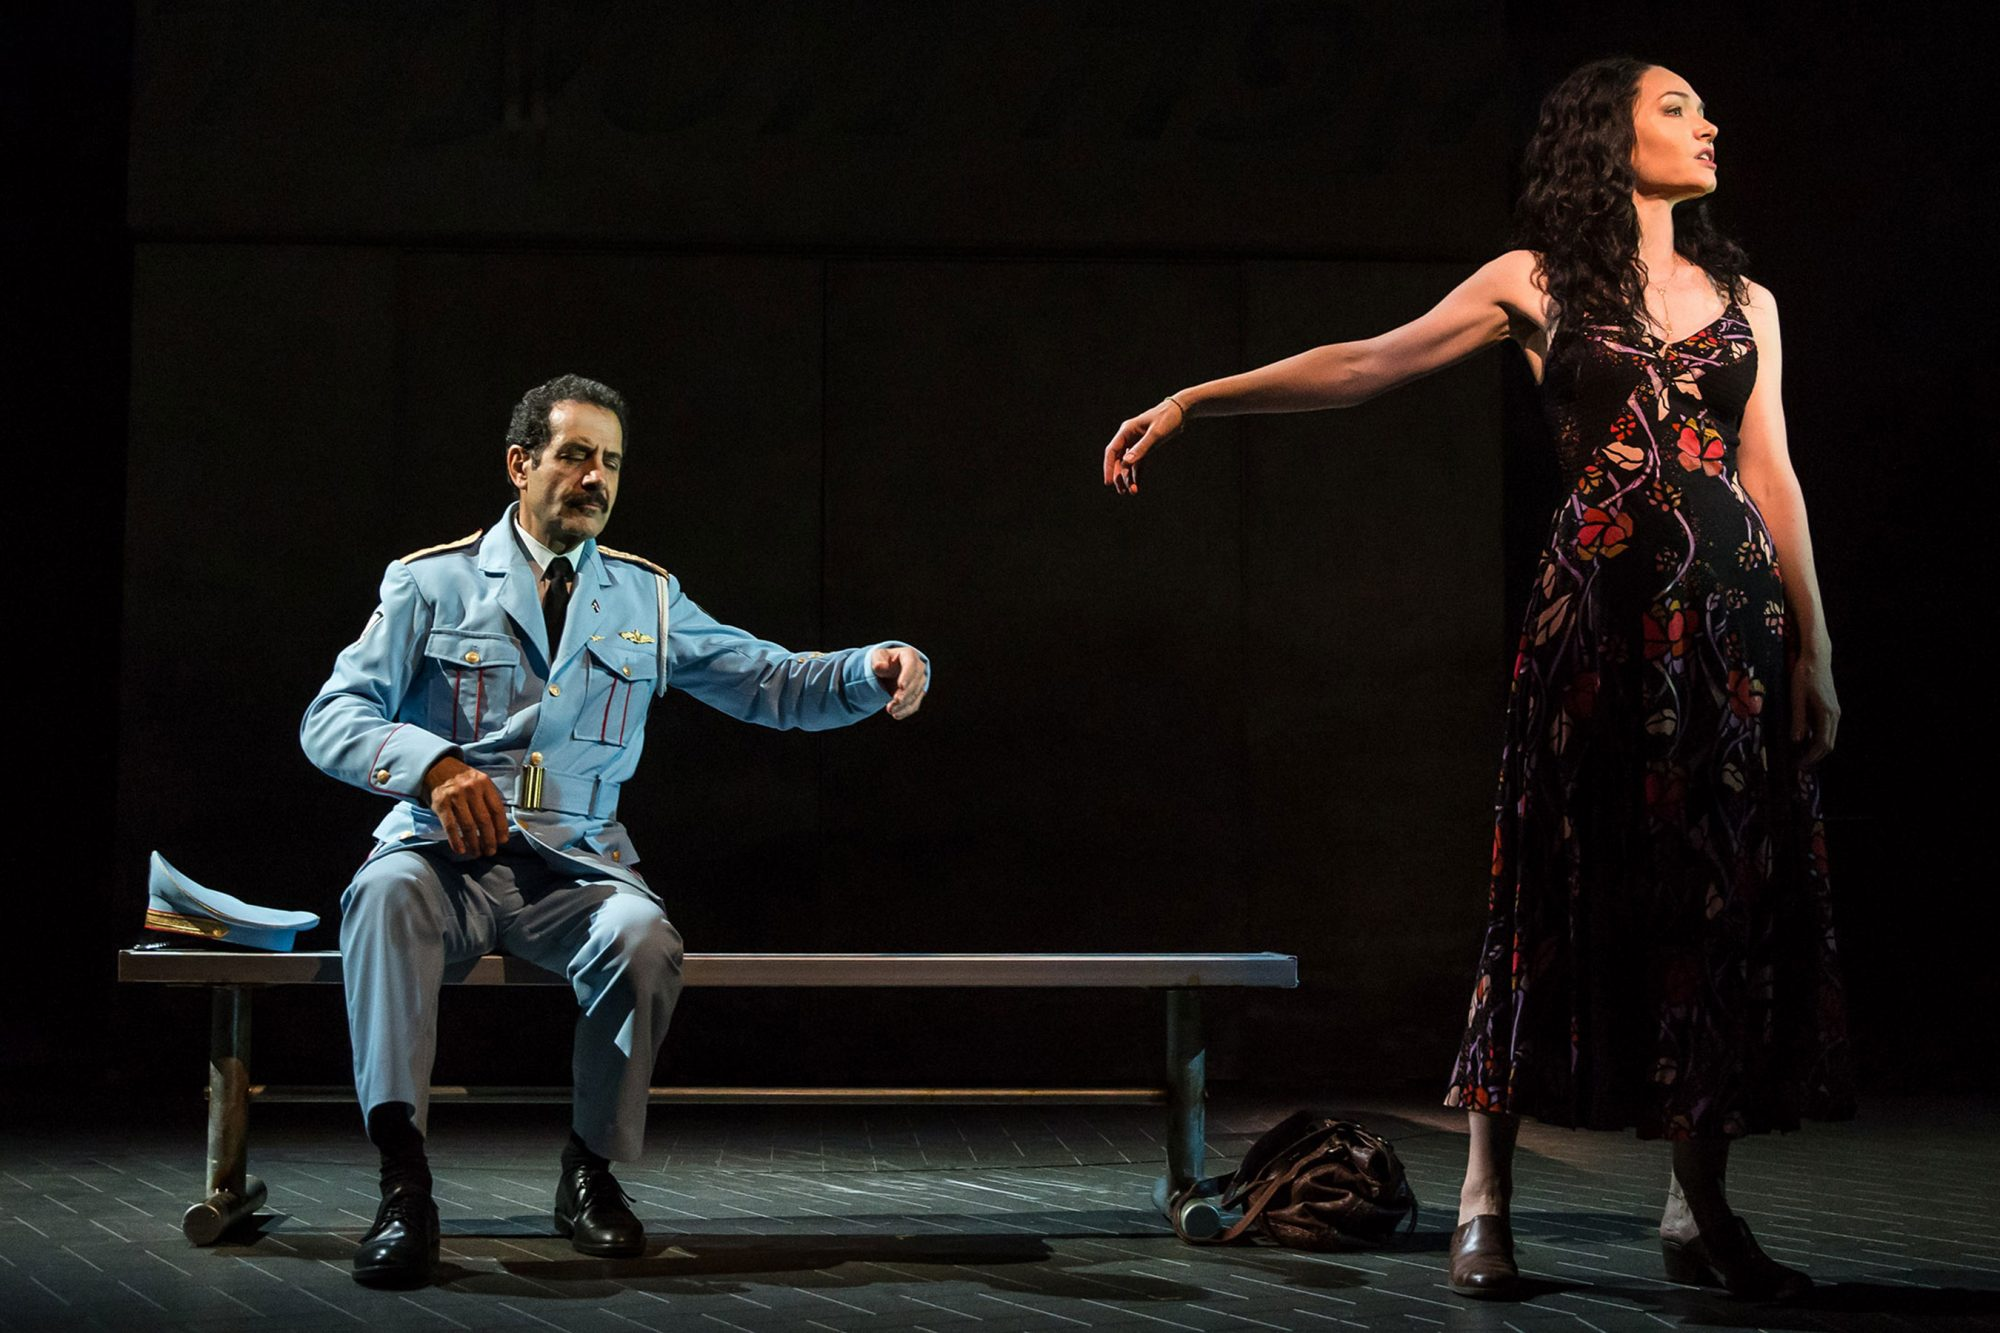 0251_Tony Shalhoub, Katrina Lenk in THE BAND'S VISIT, Photo by Matthew Murphy, 2017